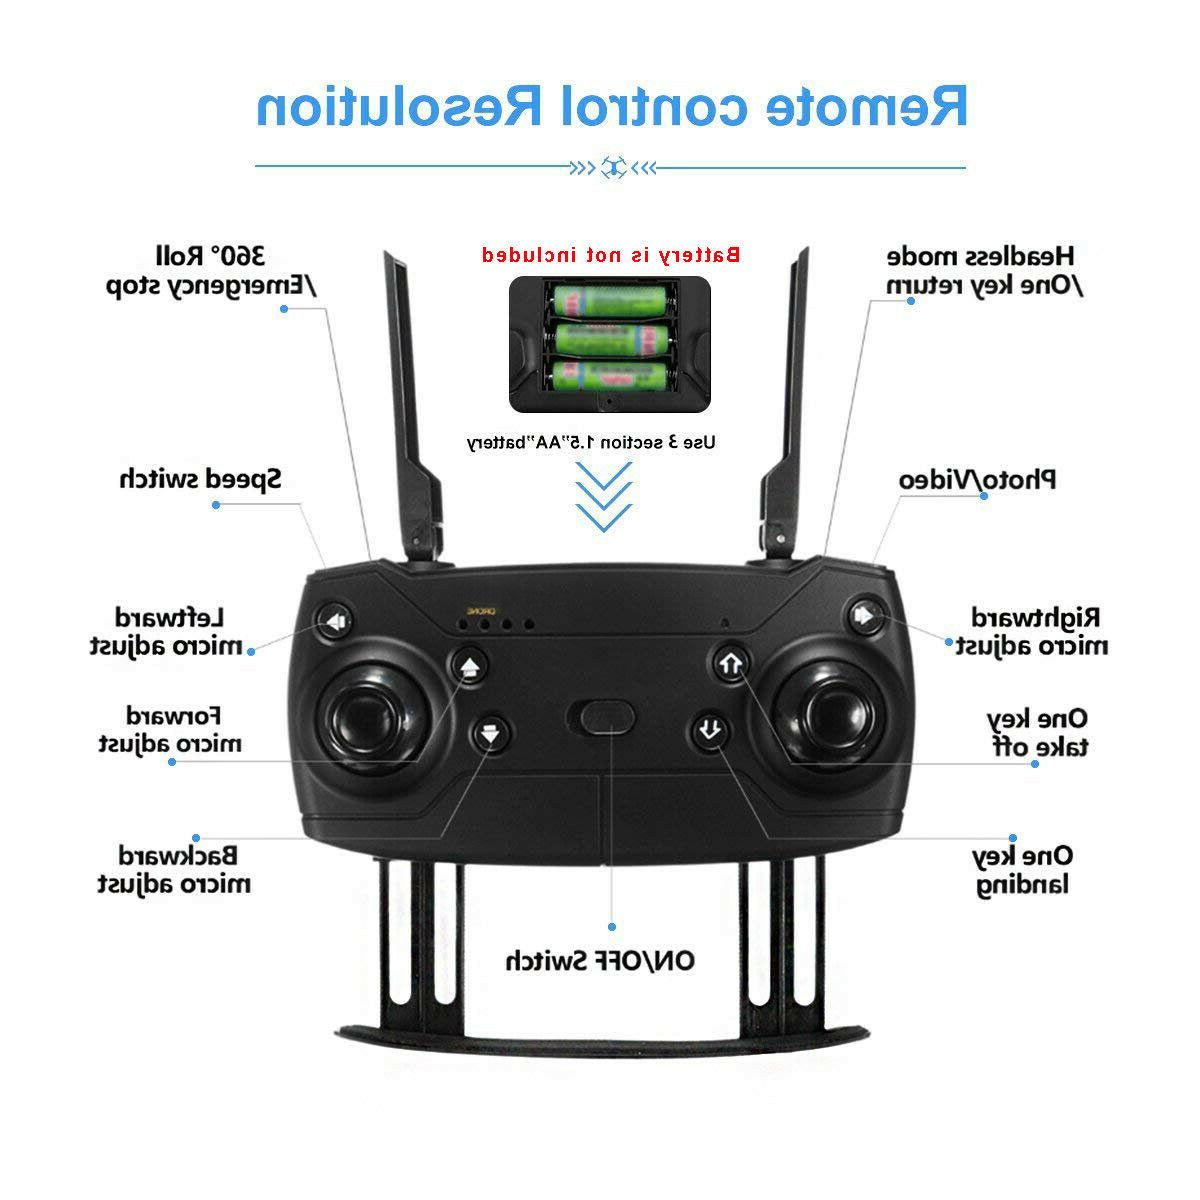 Cooligg Wifi HD Camera Drone Aircraft Foldable Selfie